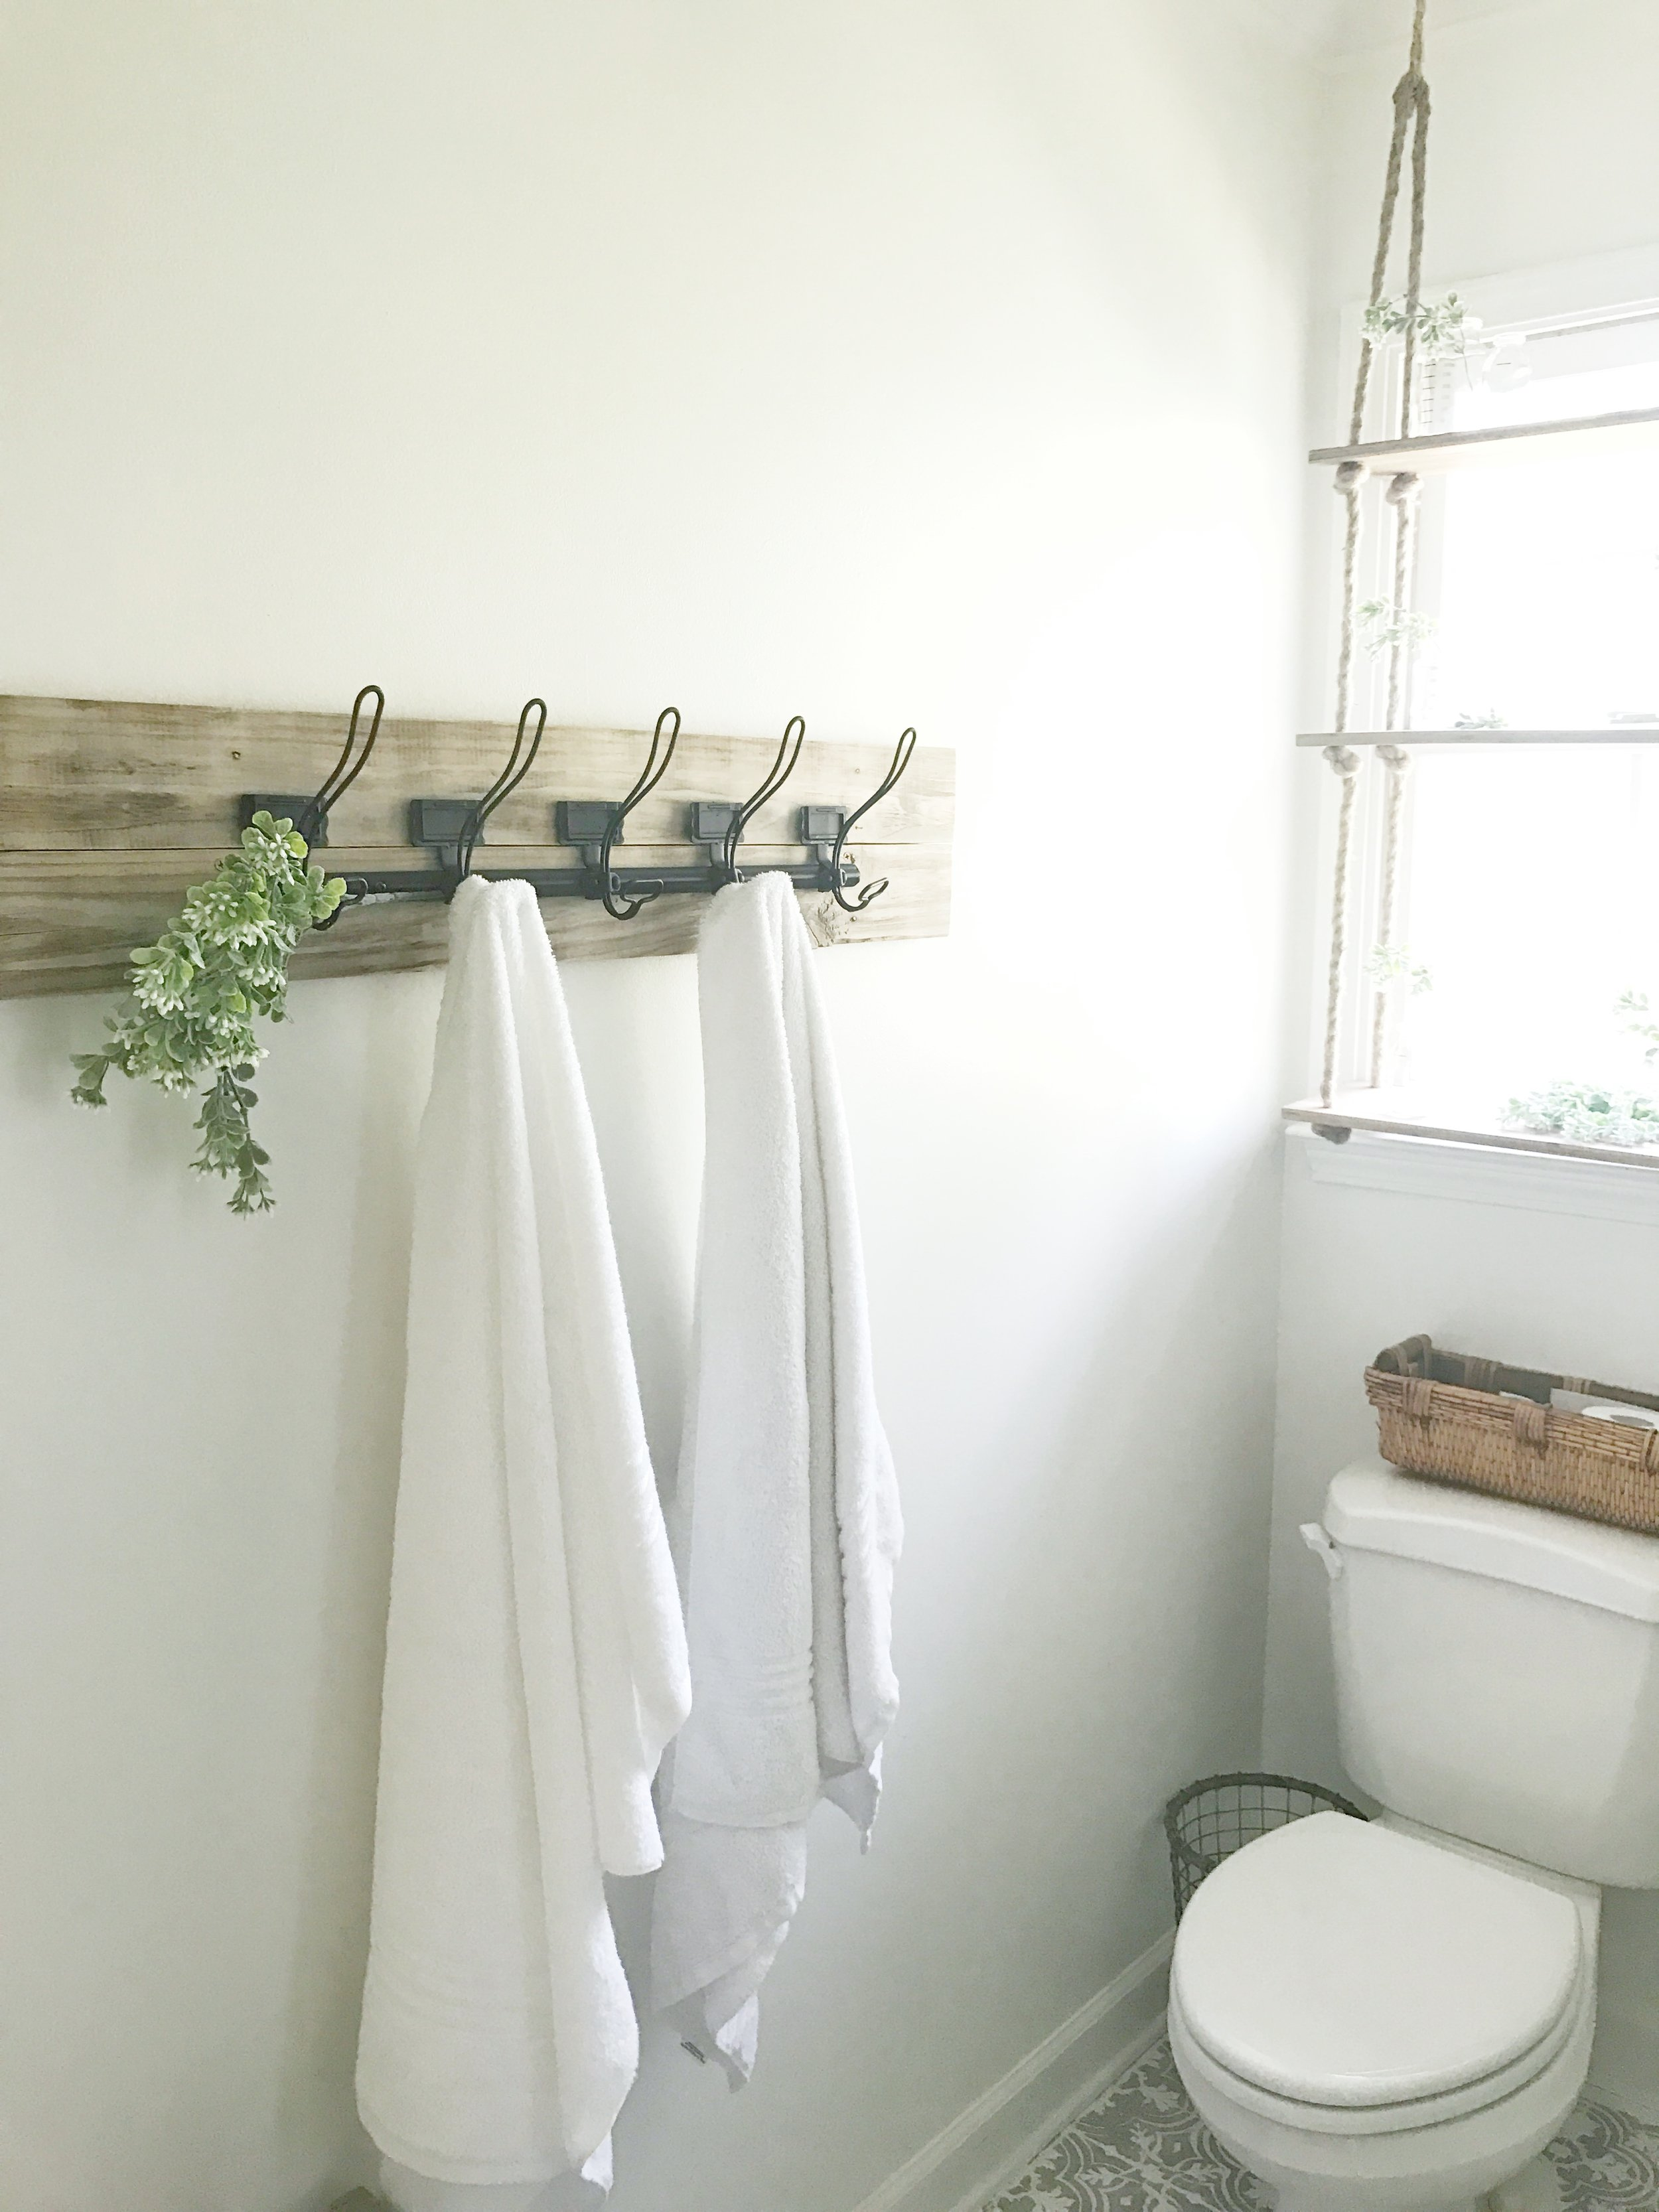 Full Farmhouse Master Bathroom Tour- How I spent only $500 and one weekend to completely transform my bathroom- Plum Pretty Decor and Design